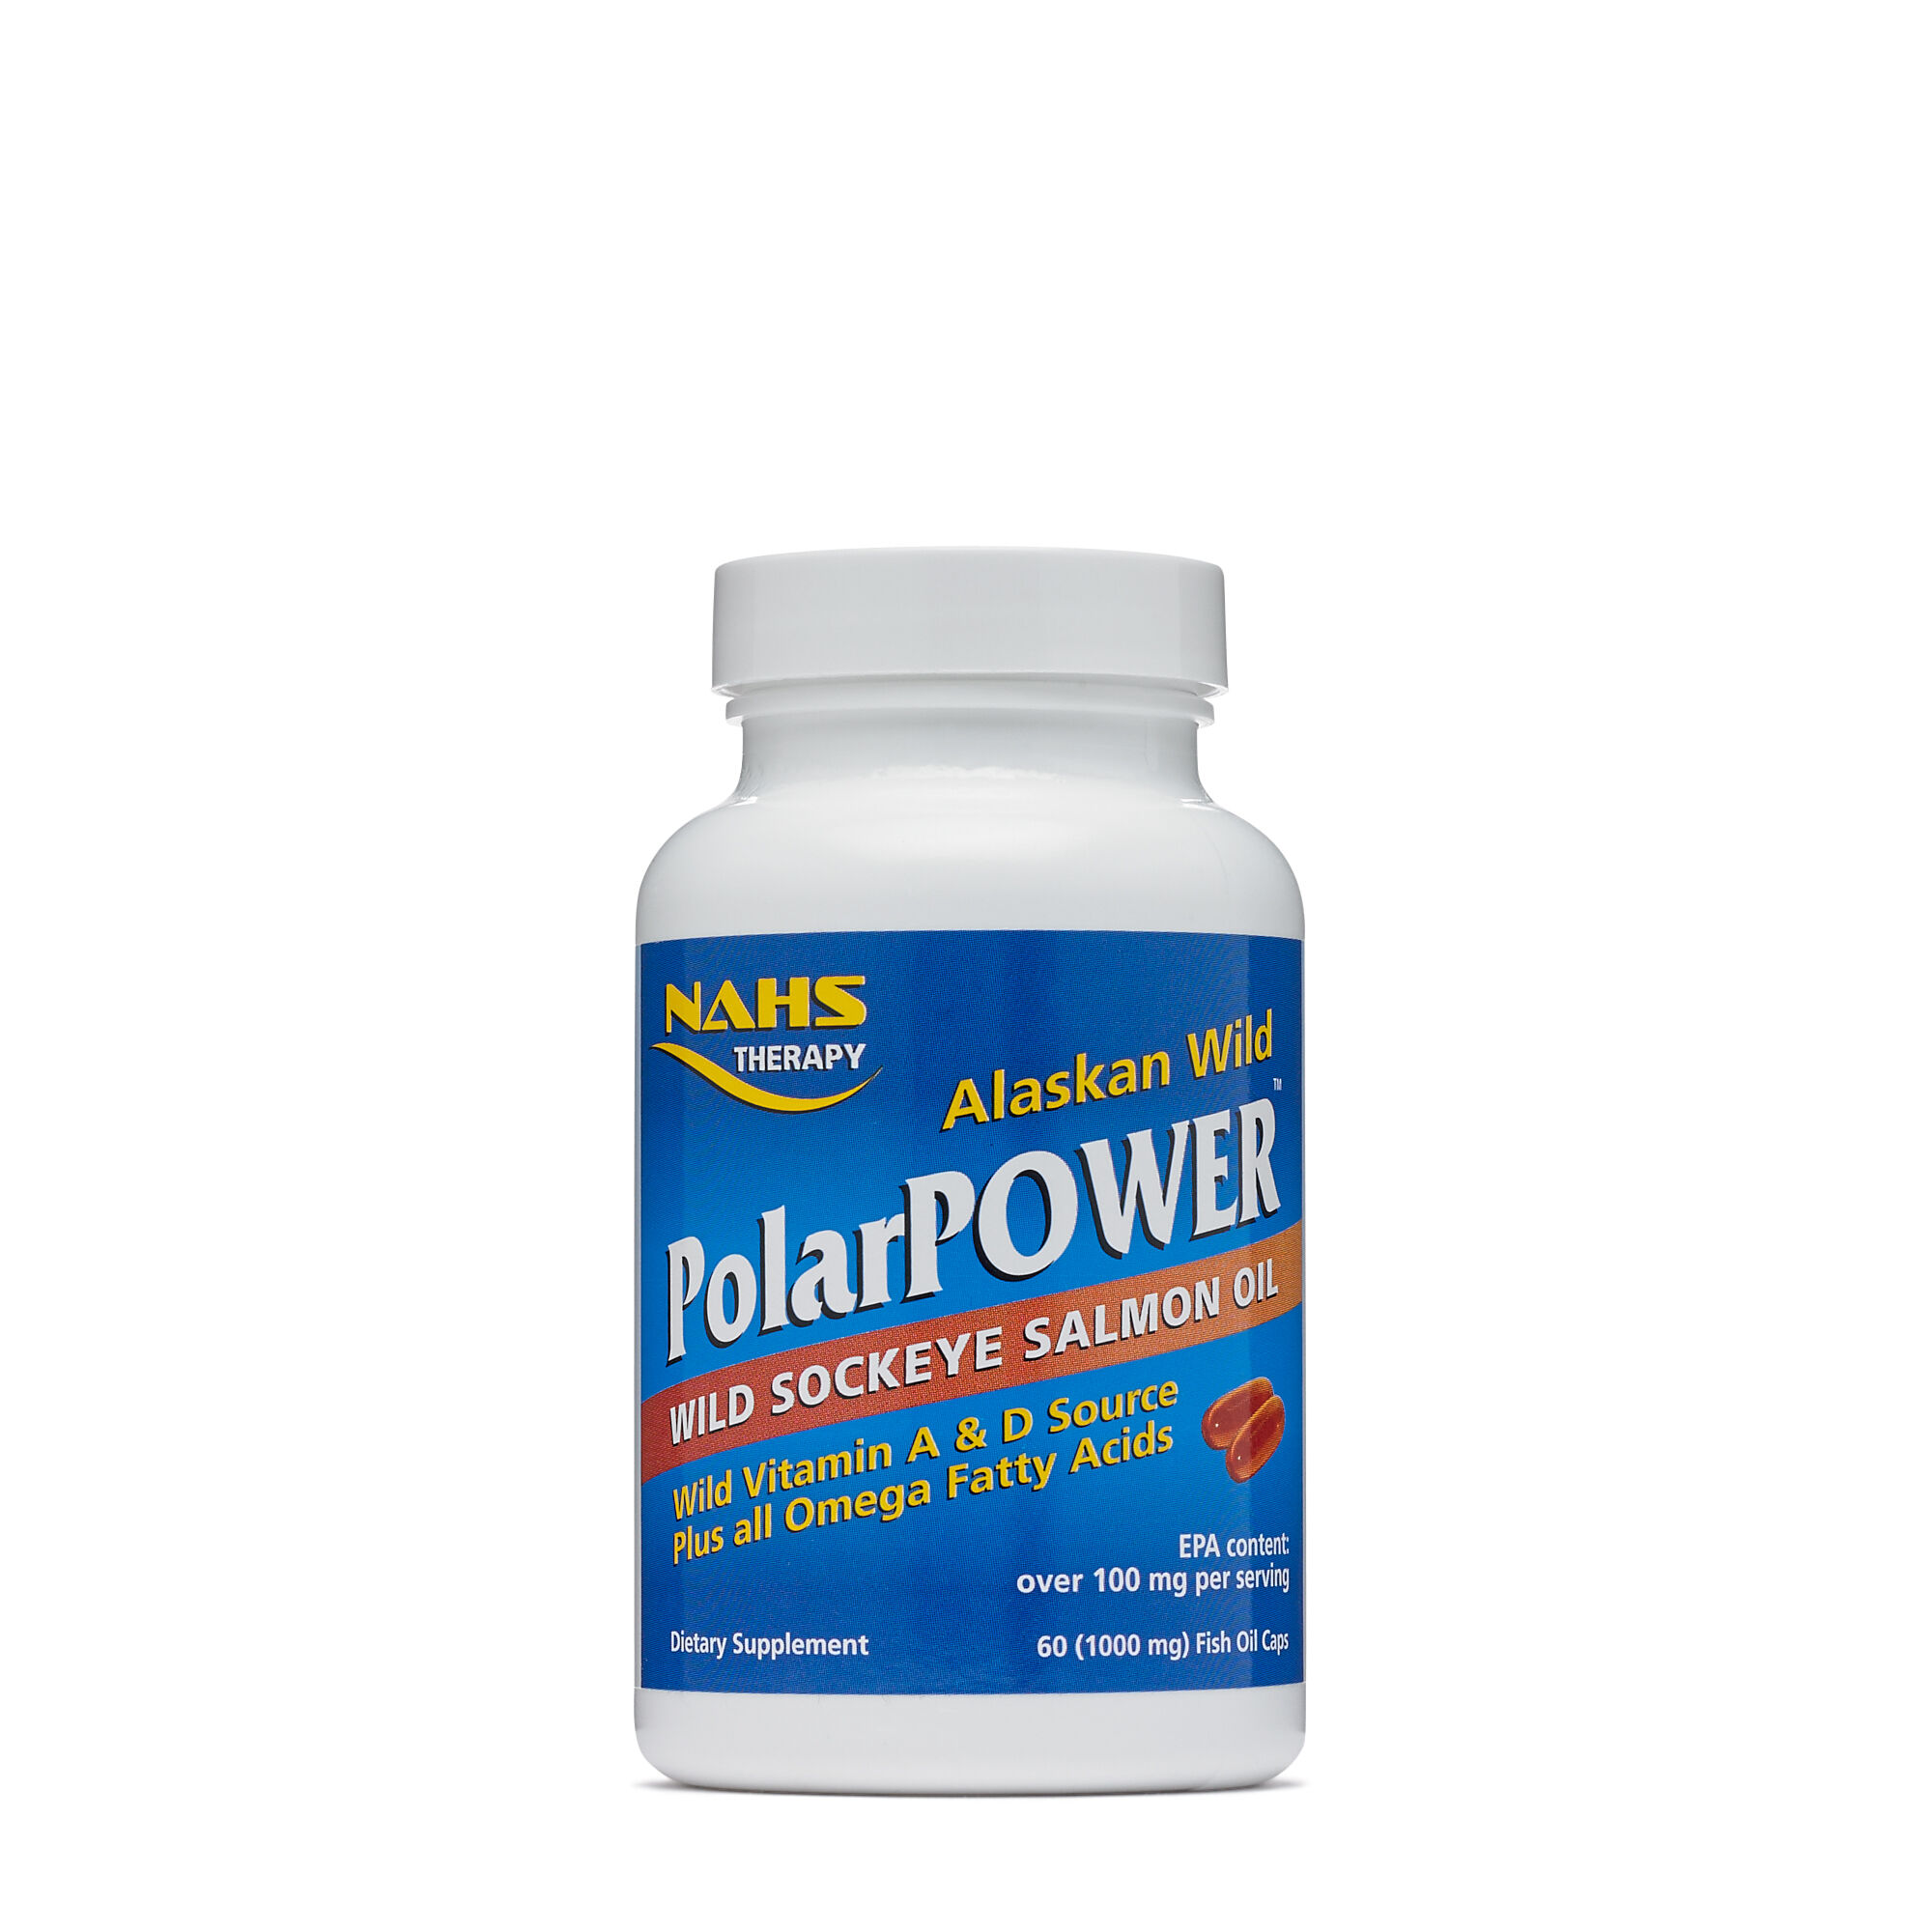 Alaskan Wild Polarpower - 60 Capsules - North American Herb & Spice - Salmon Oil